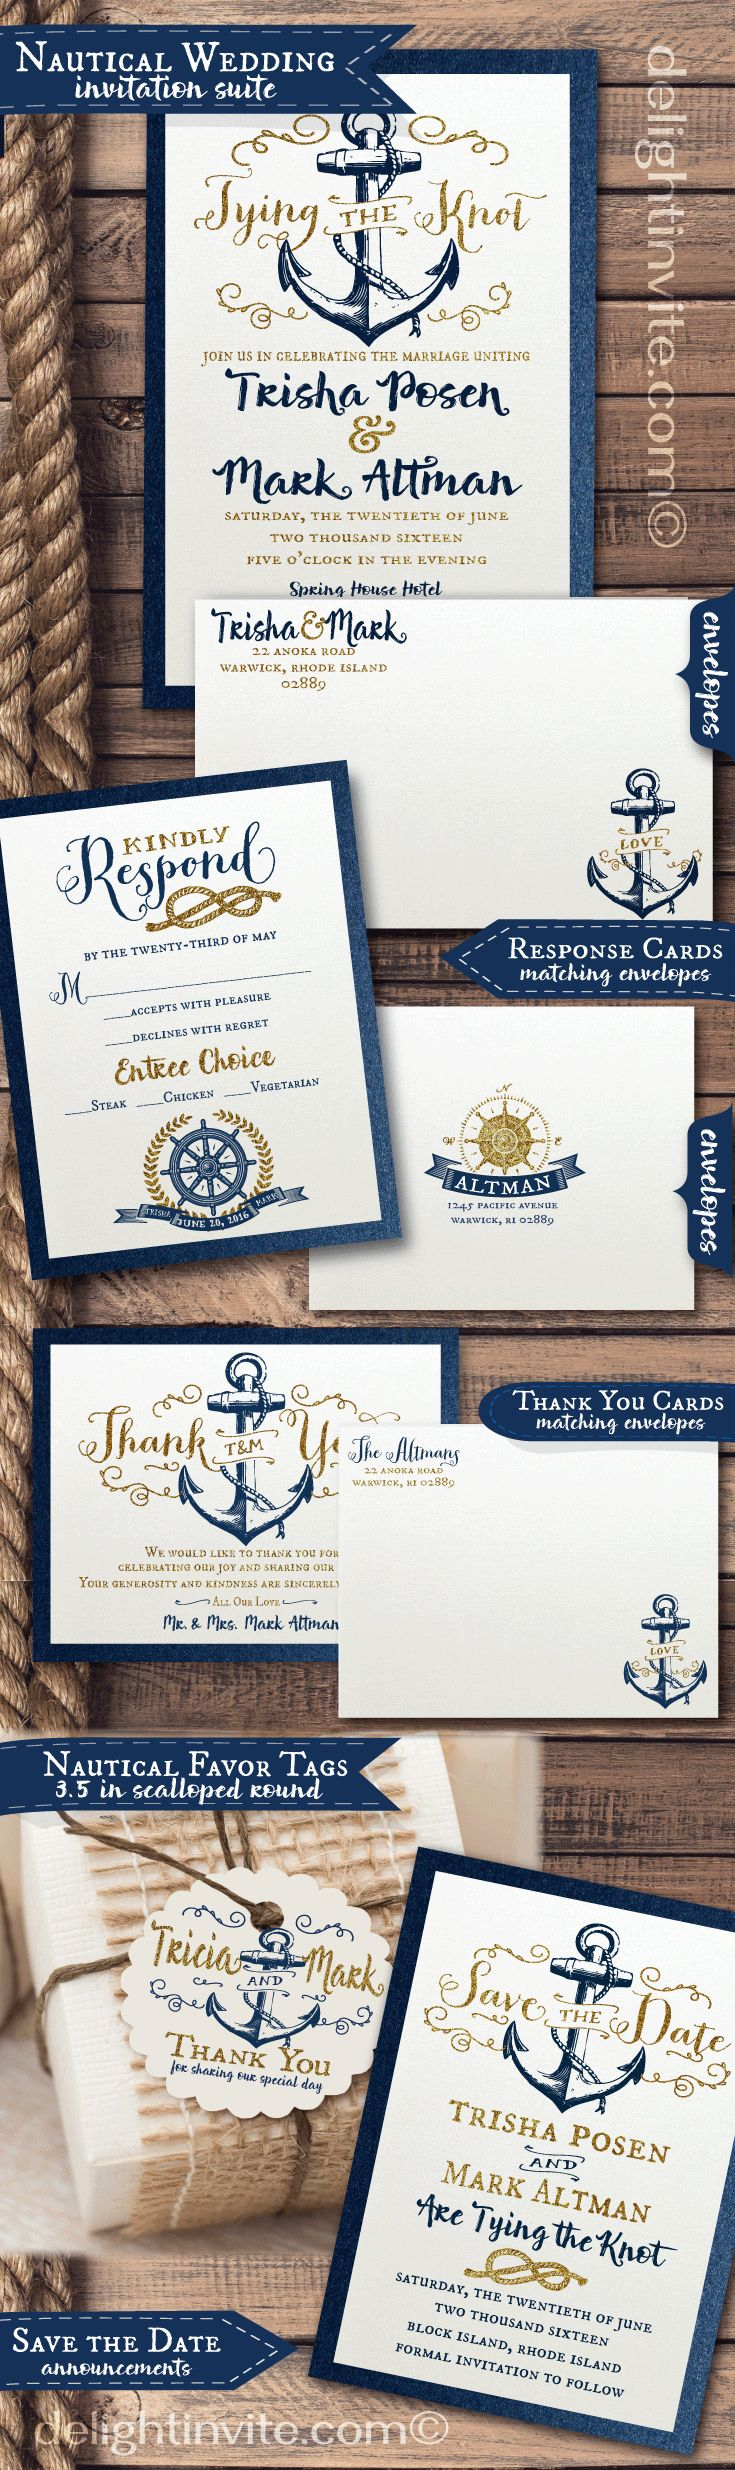 Vintage rustic nautical wedding invitation ensemble from Delight Invite. Professionally printed and artfully hand-mounted on beautiful metallic navy blue card stock. This gorgeous nautical wedding suite includes matching RSVP cards, thank you cards, favor tags, and save the date cards.